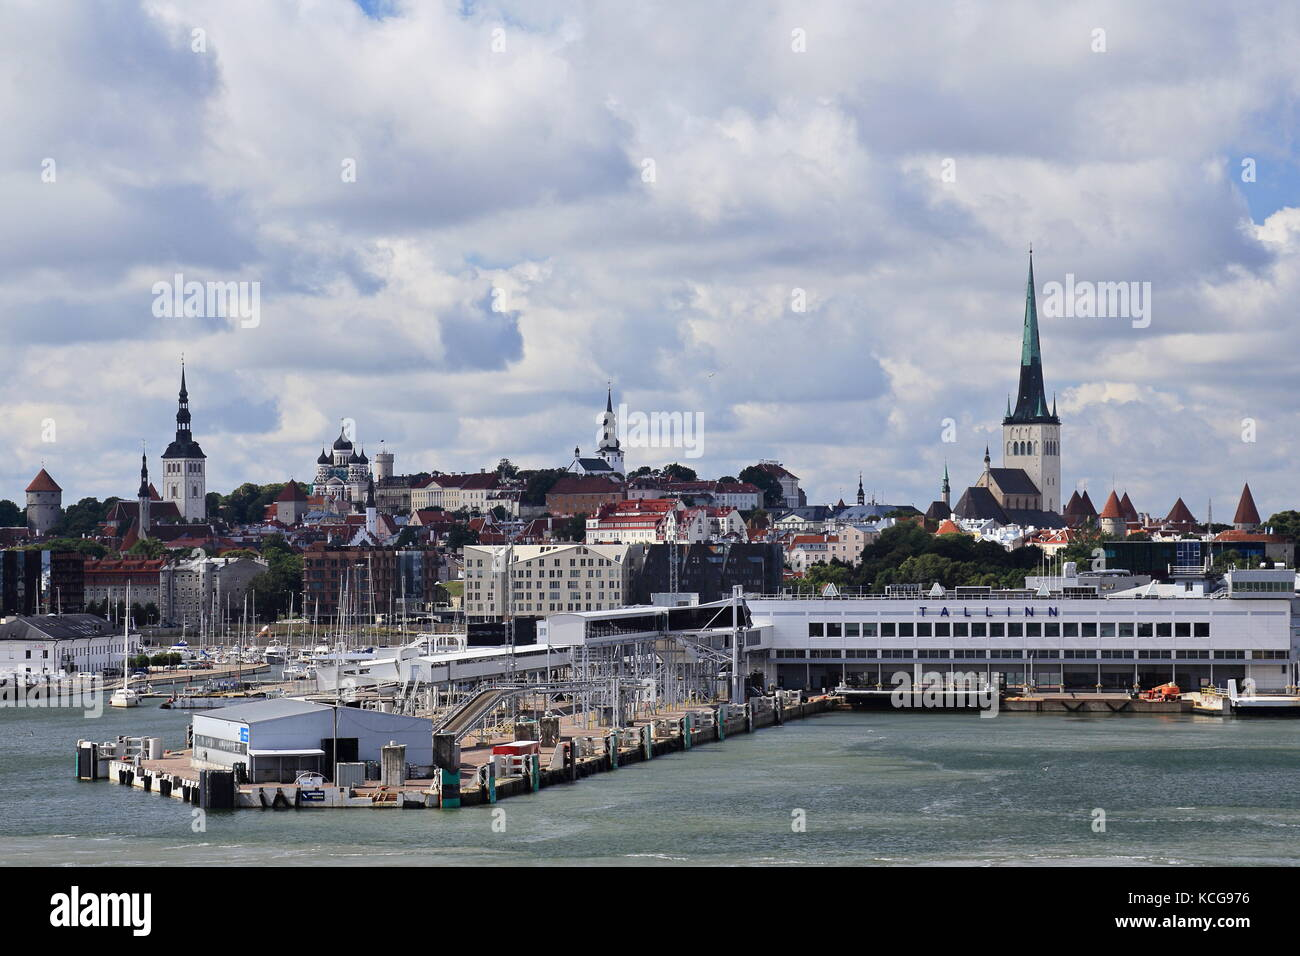 b1d4ddbfe0c Port of Tallinn, Estonia seen from the sea Stock Photo: 162627674 ...